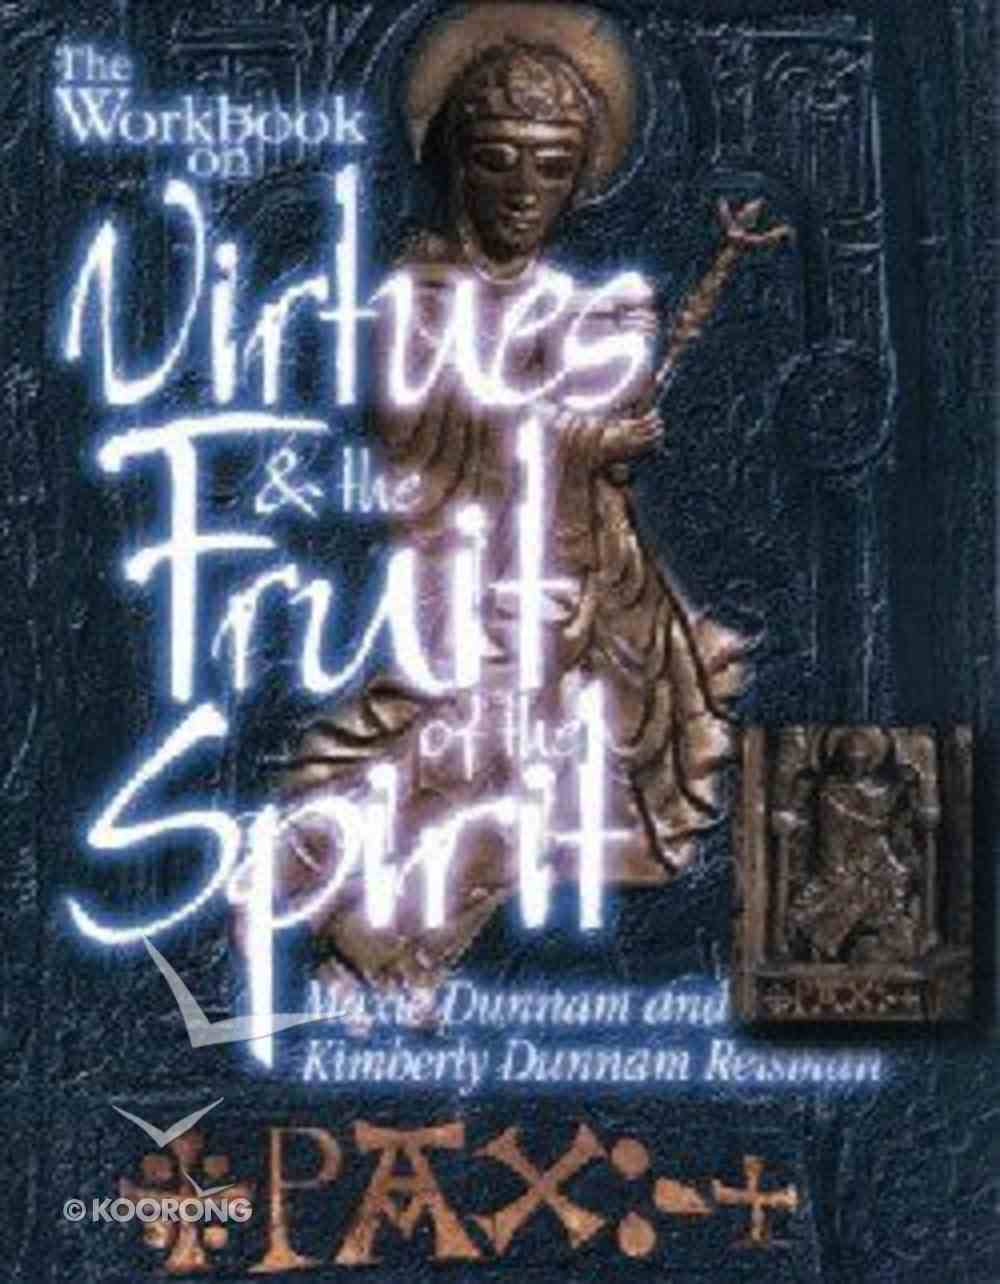 The Workbook on Virtues and the Fruit of the Spirit (Upper Room Workbook Series) Paperback